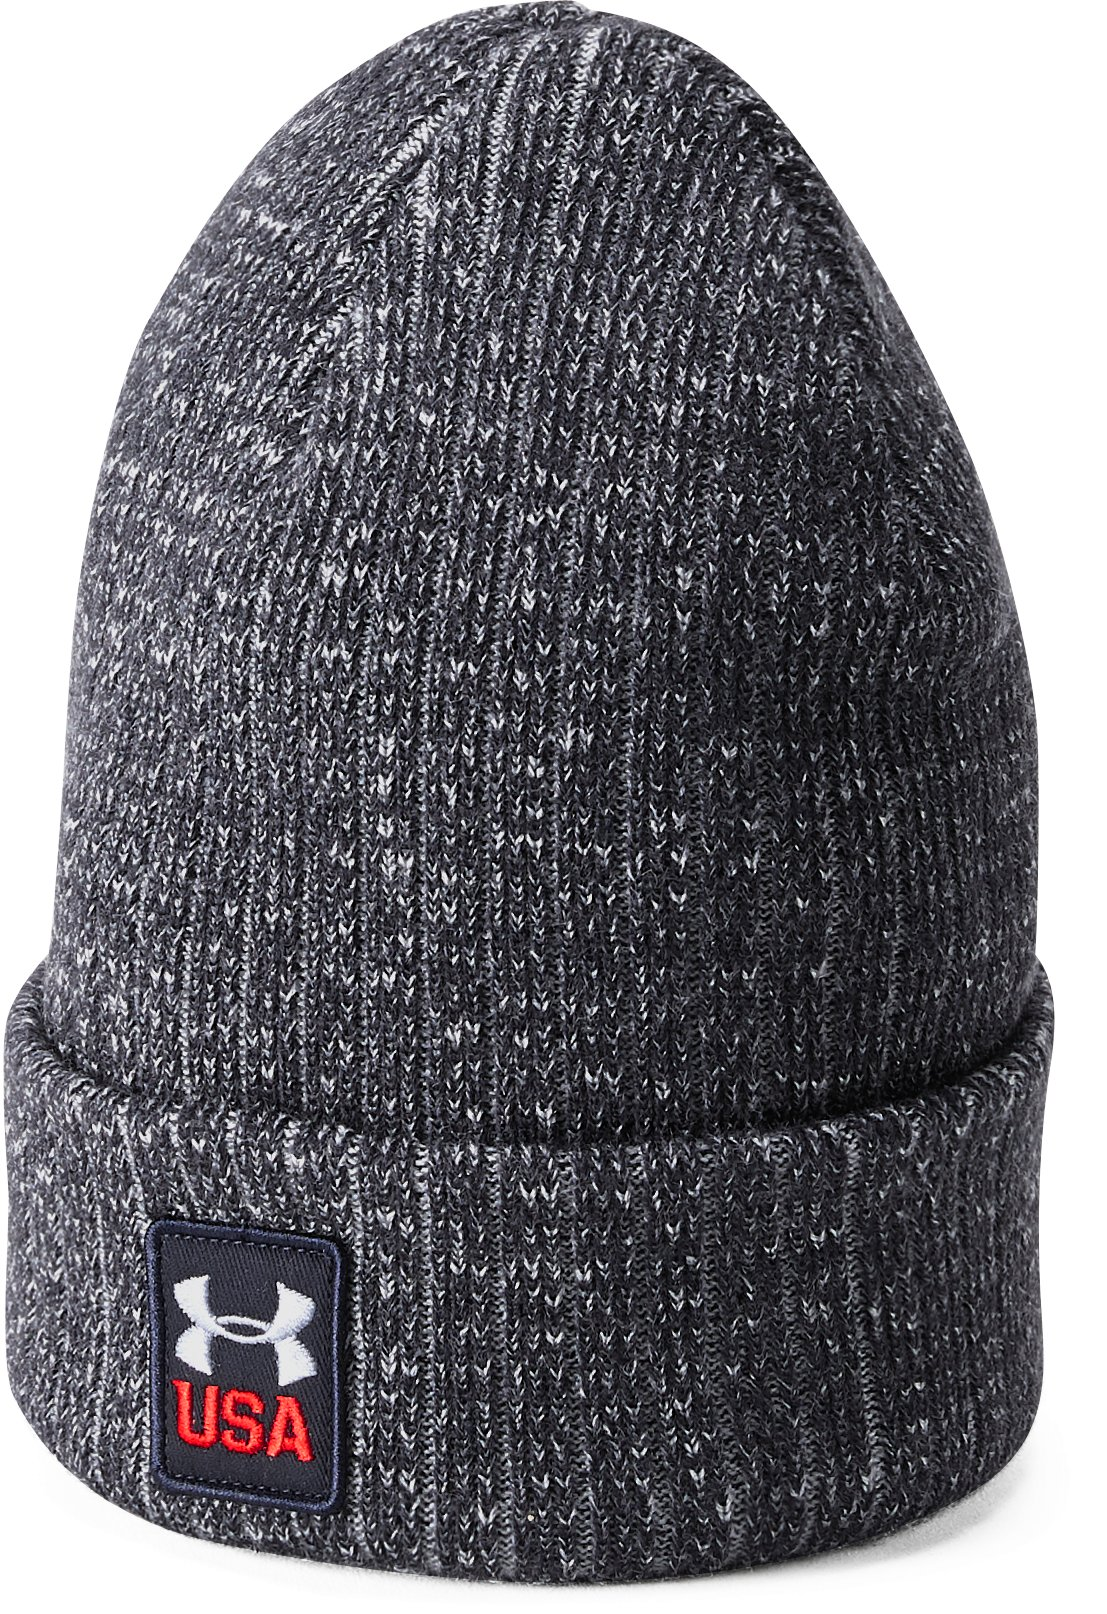 Men's UA Stars & Stripes Truckstop Beanie 1 Color $14.99